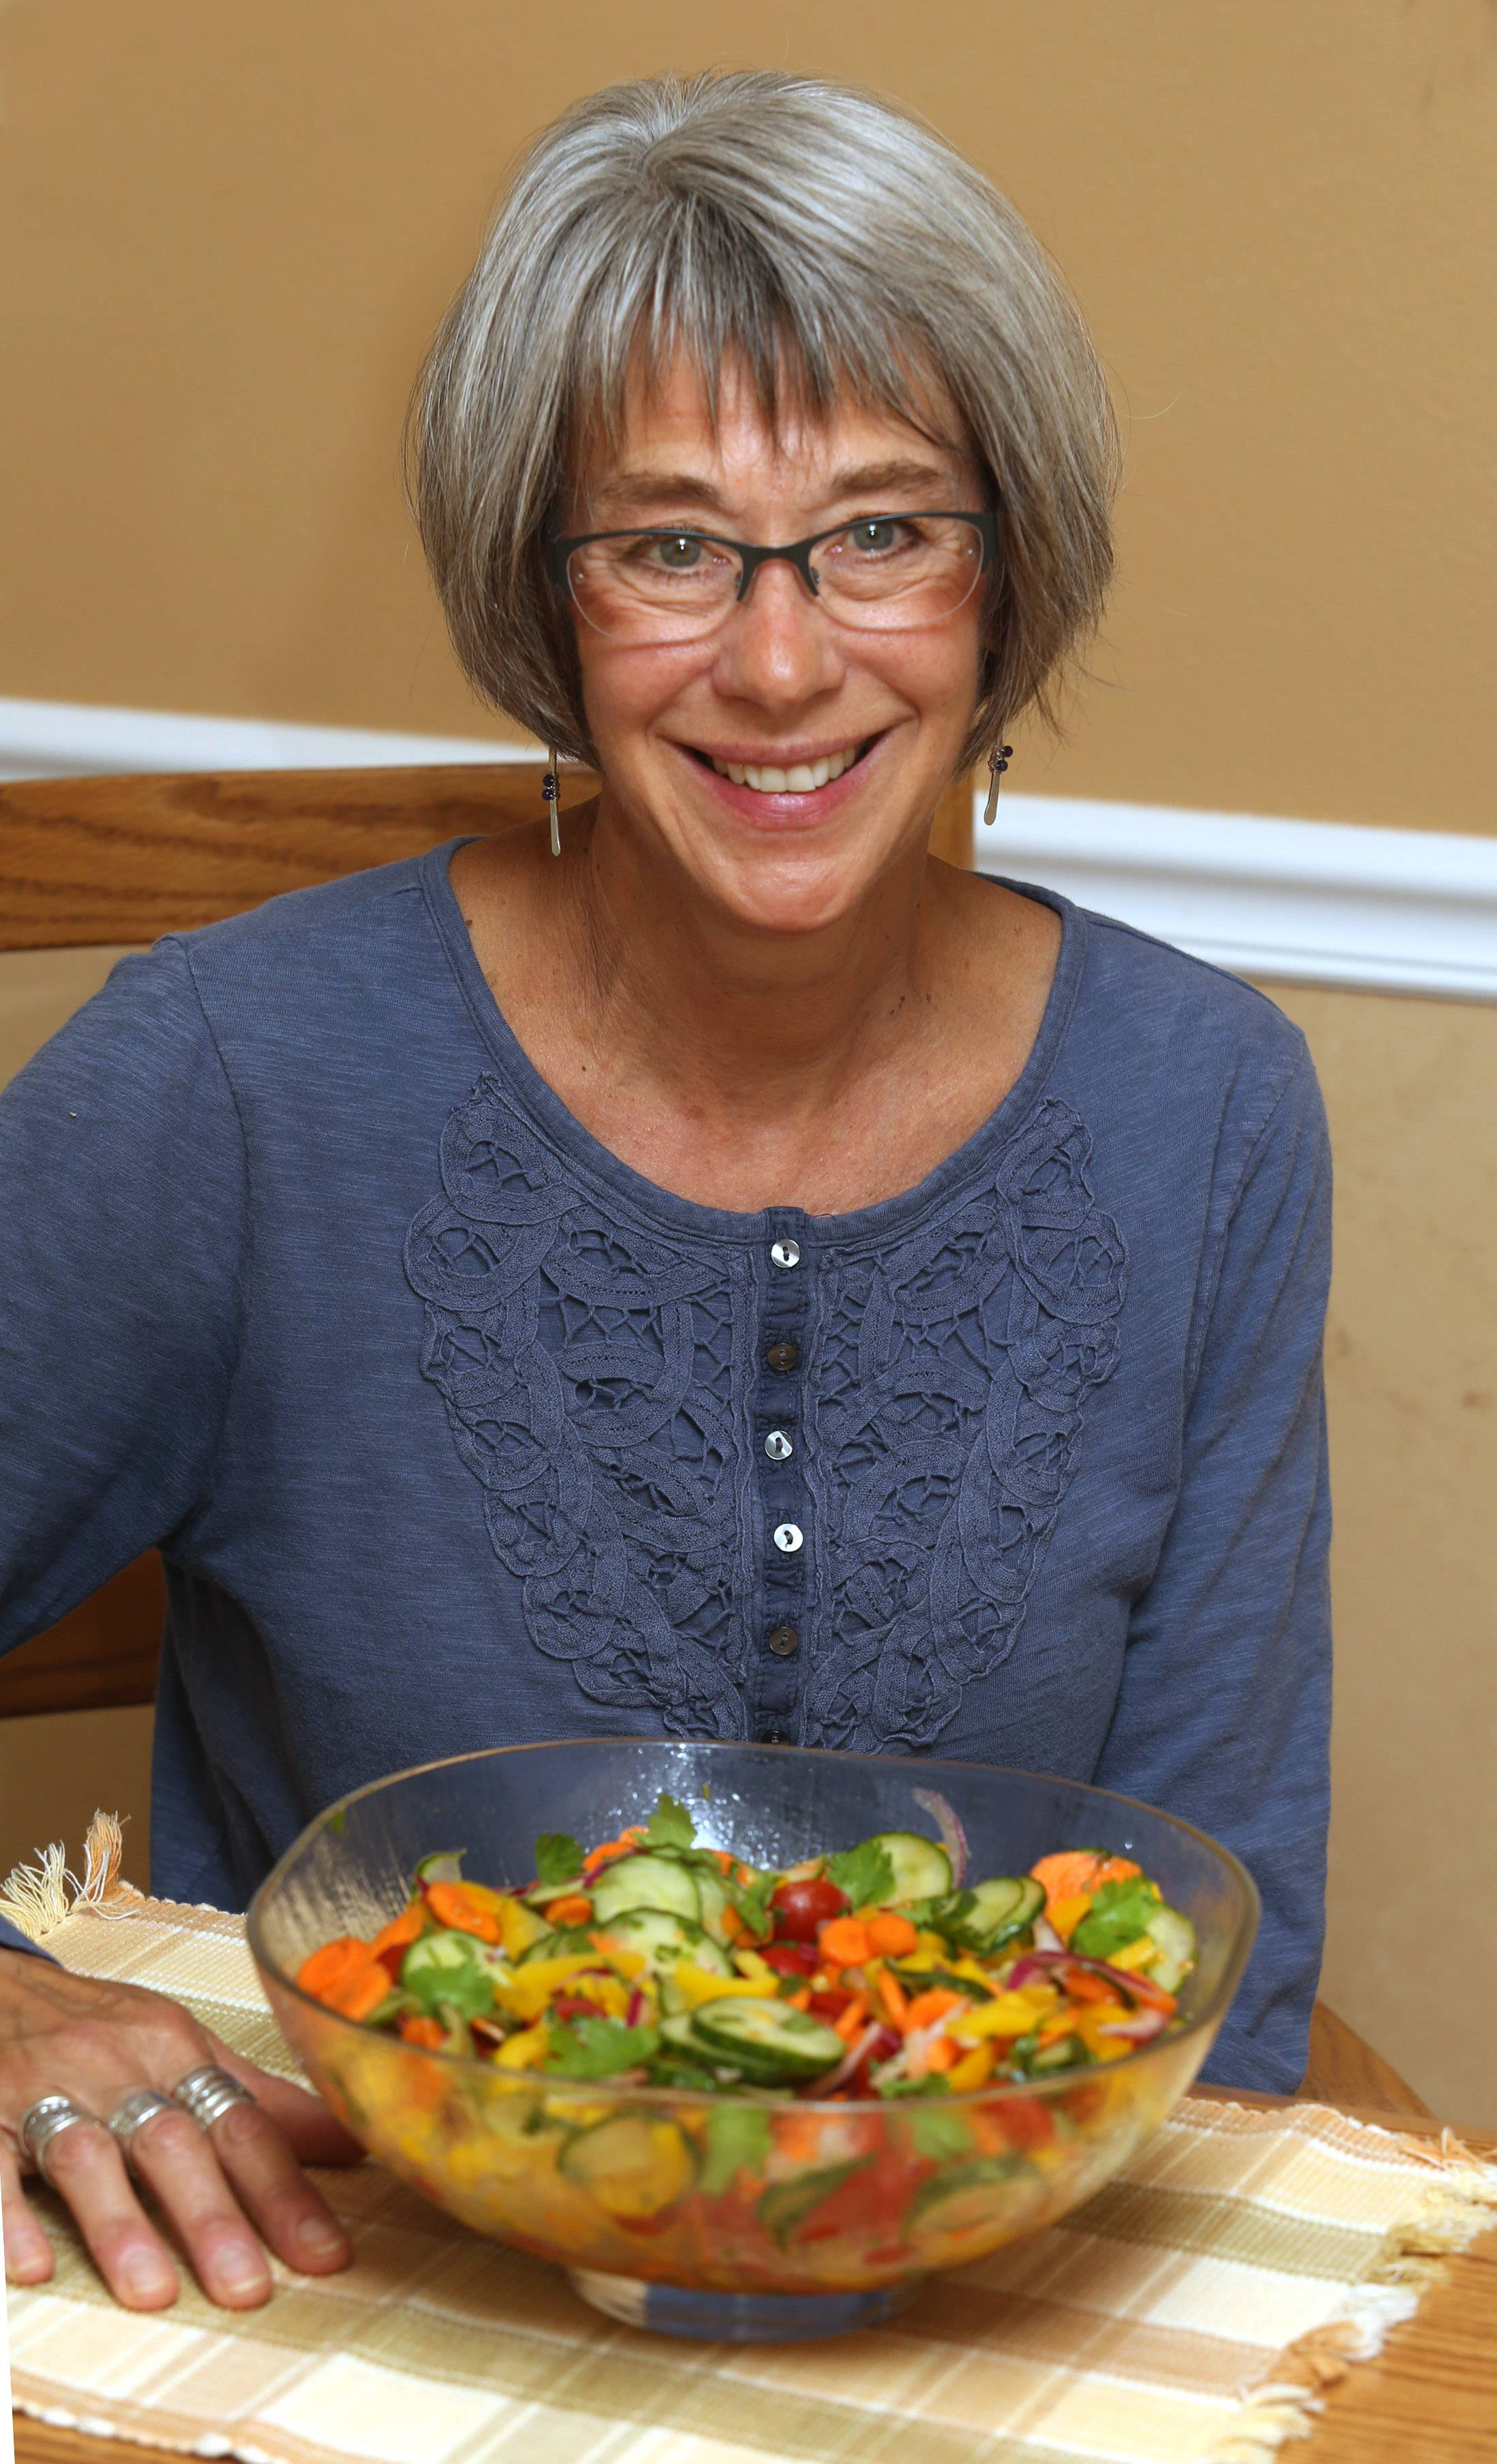 Linda Lenhardt likes the make-ahead appeal of her Cucumber Vegetable Salad with Cilantro.